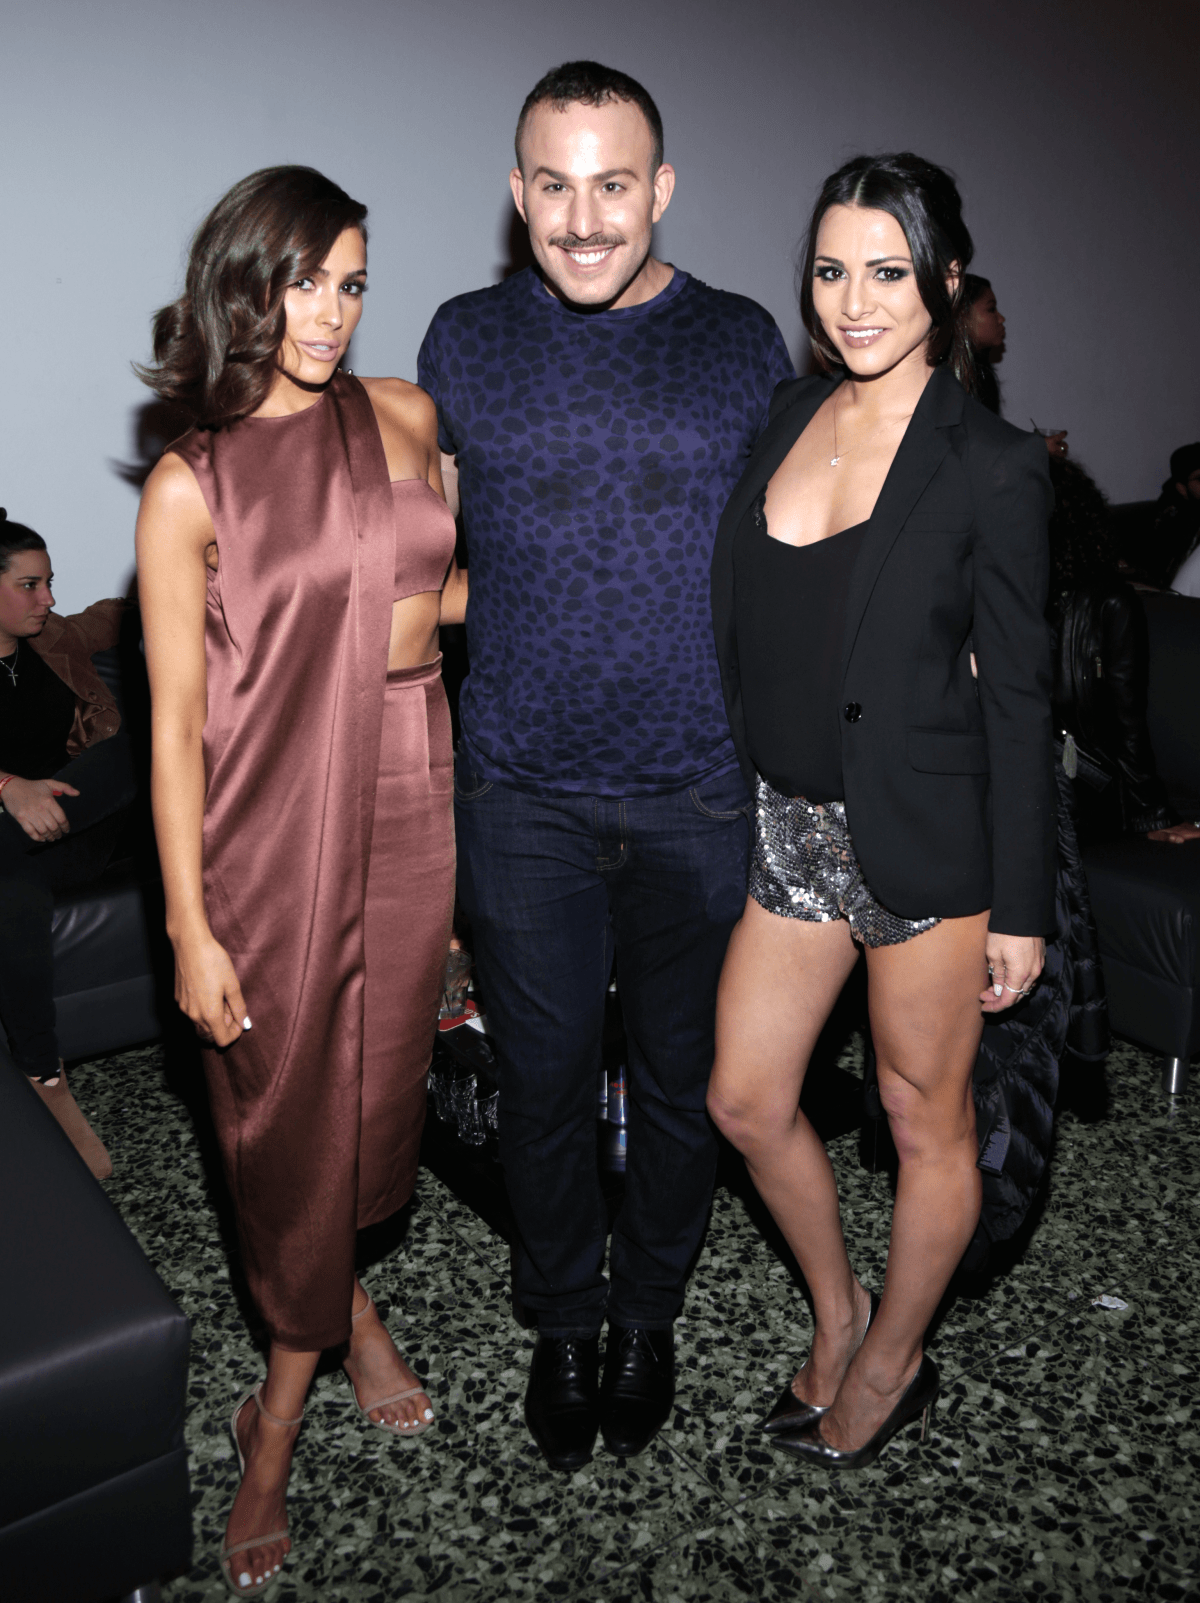 Houston, Rolling Stone Super Bowl party, Jan 2017, Olivia Culpo, Micah Jesse,  Andi Dorfman